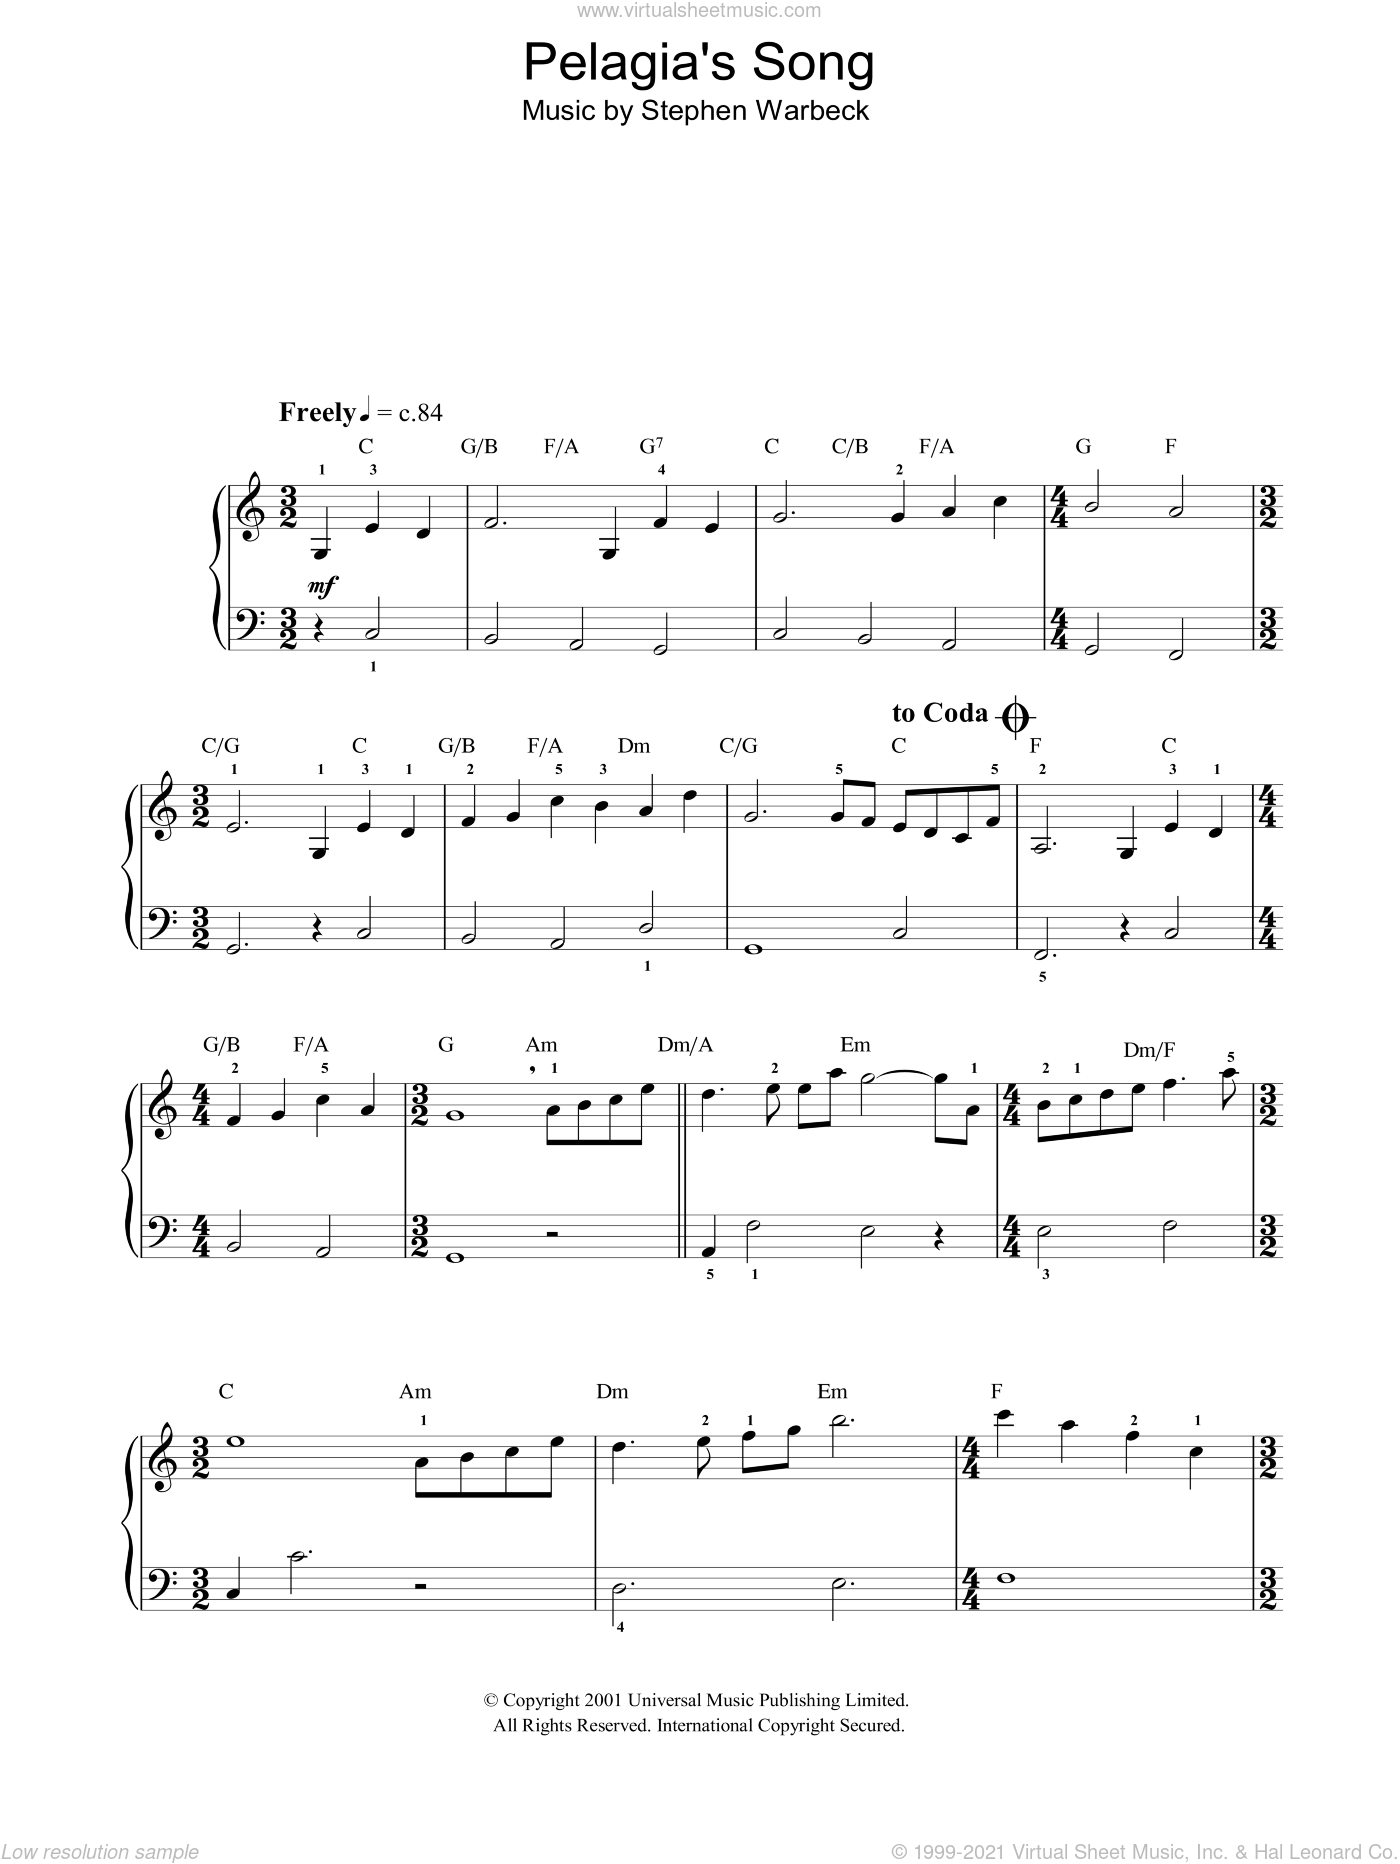 Pelagia's Song (Ricordo Ancor) (from Captain Corelli's Mandolin) sheet music for piano solo by Stephen Warbeck. Score Image Preview.